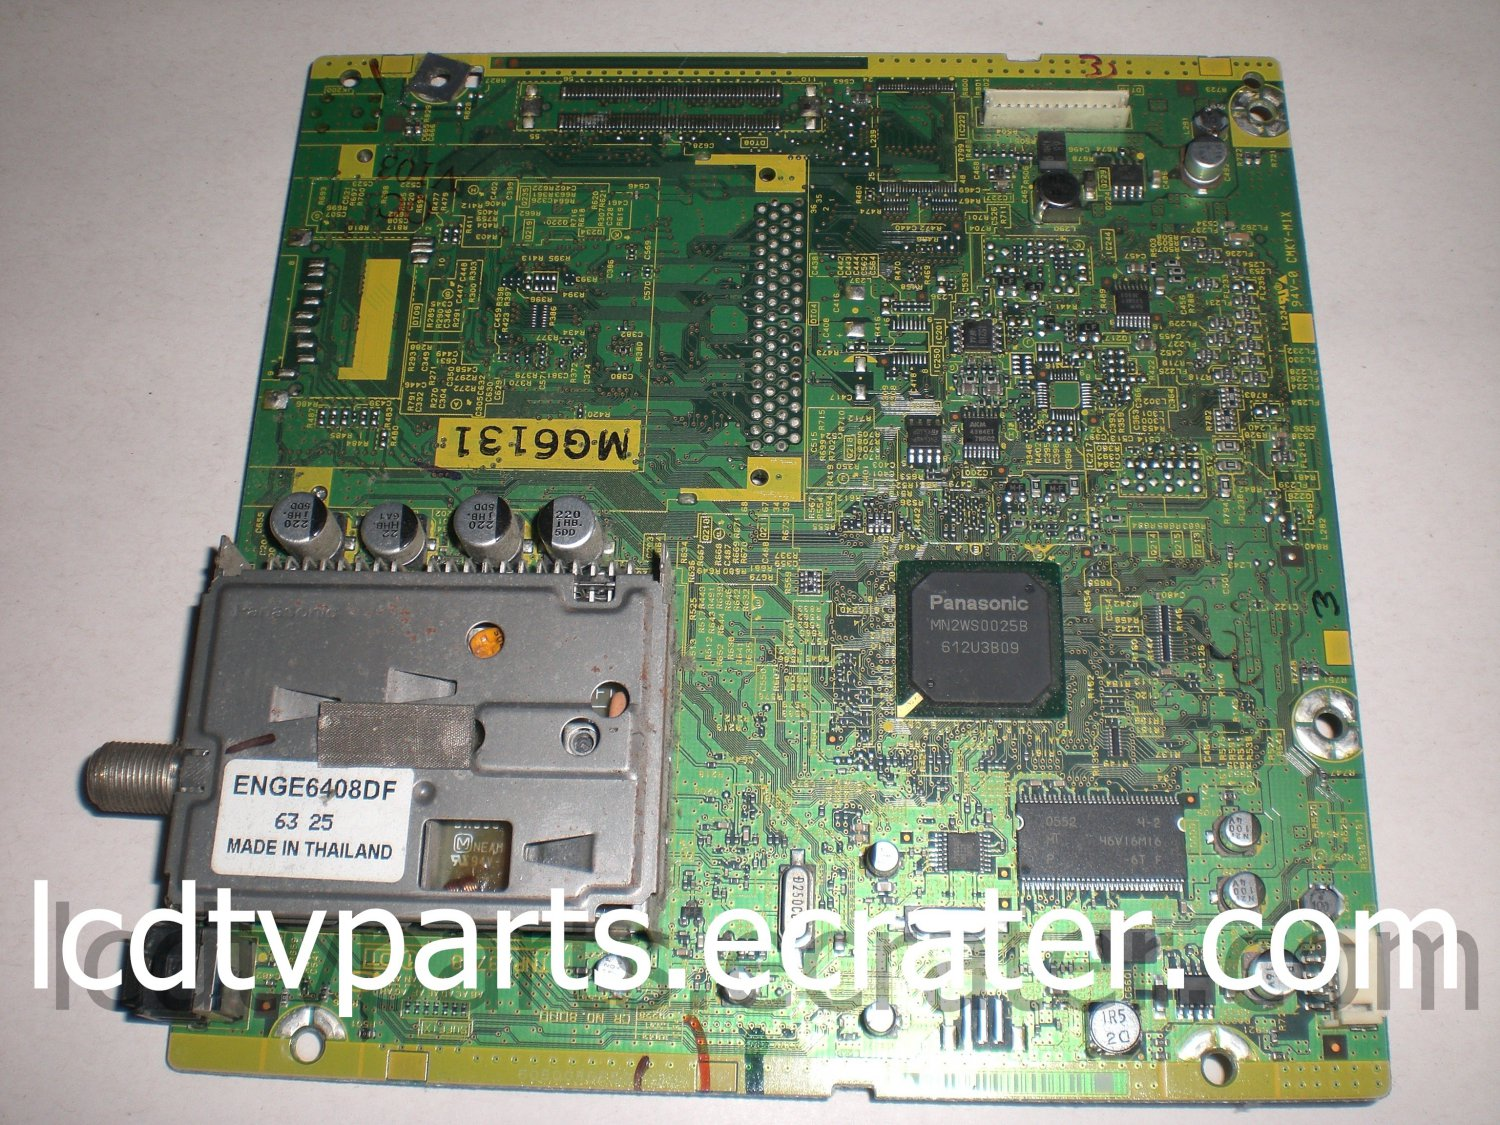 TNAG167S, TNPA3758AB, TNPA3758, DT Board for PANASONIC TH-42PX60U